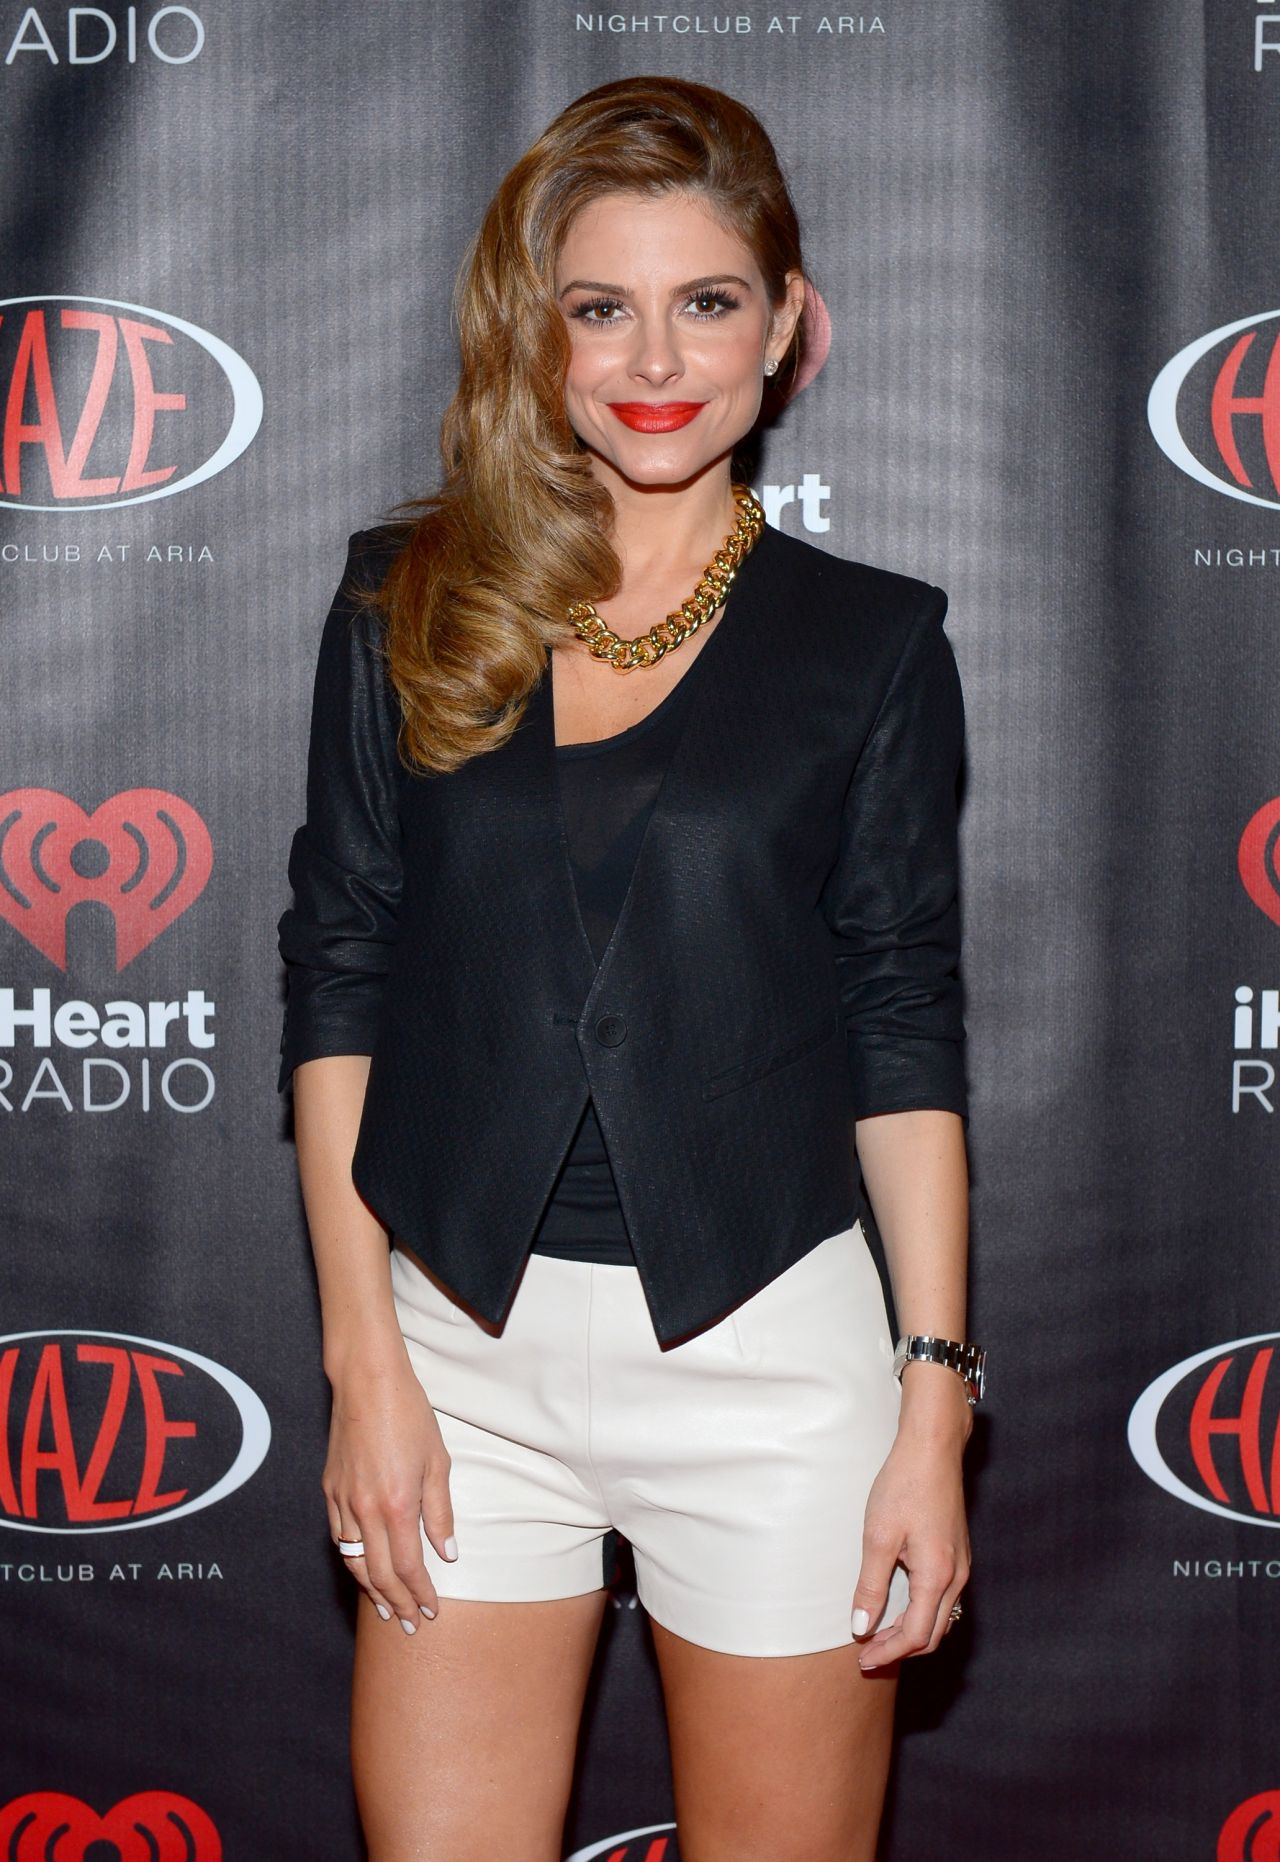 Maria Menounos at iheartradio CES party in Vegas 2014